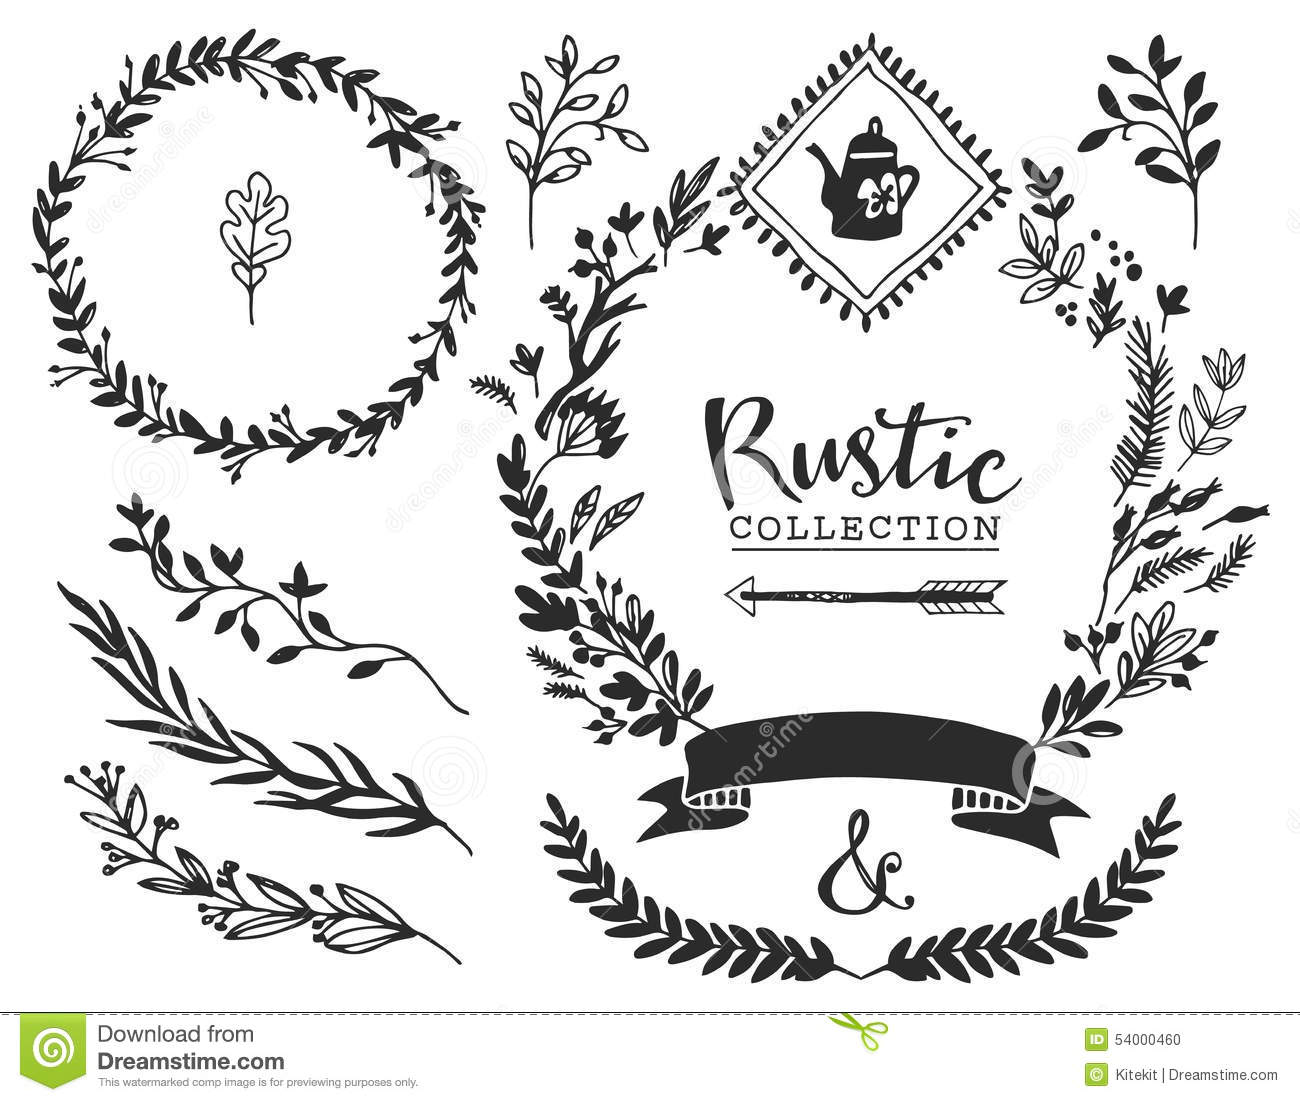 Download Rustic Decorative Elements With Lettering Hand Drawn Vintage Stock Vector